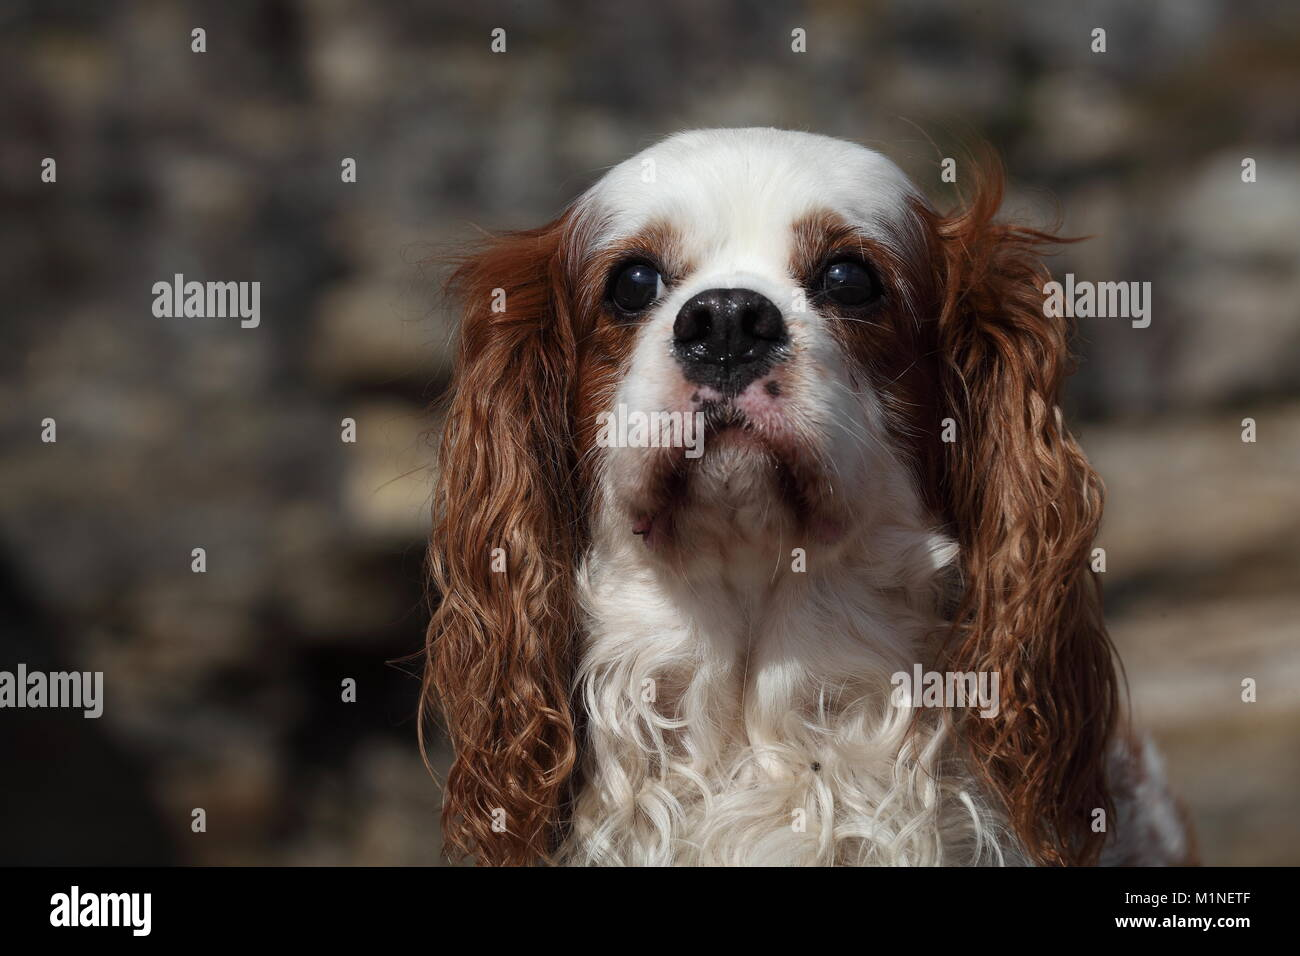 A dog with big floppy ears - Stock Image